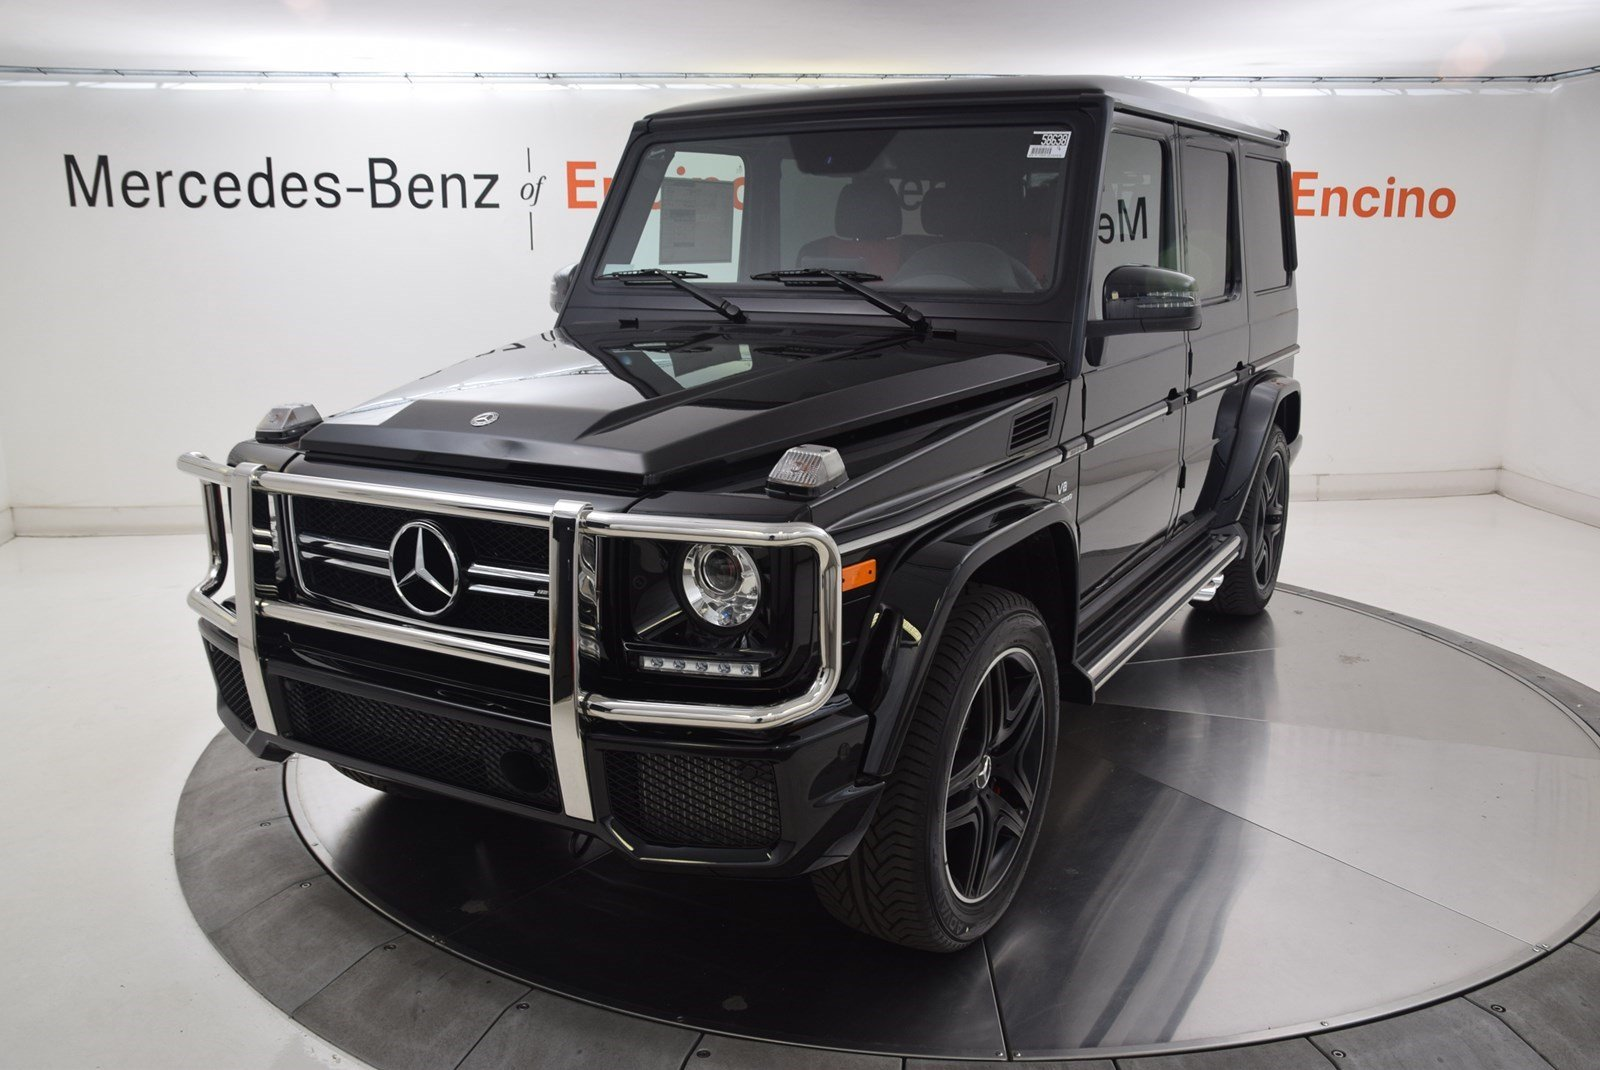 new 2018 mercedes benz g class amg g 63 suv suv in encino